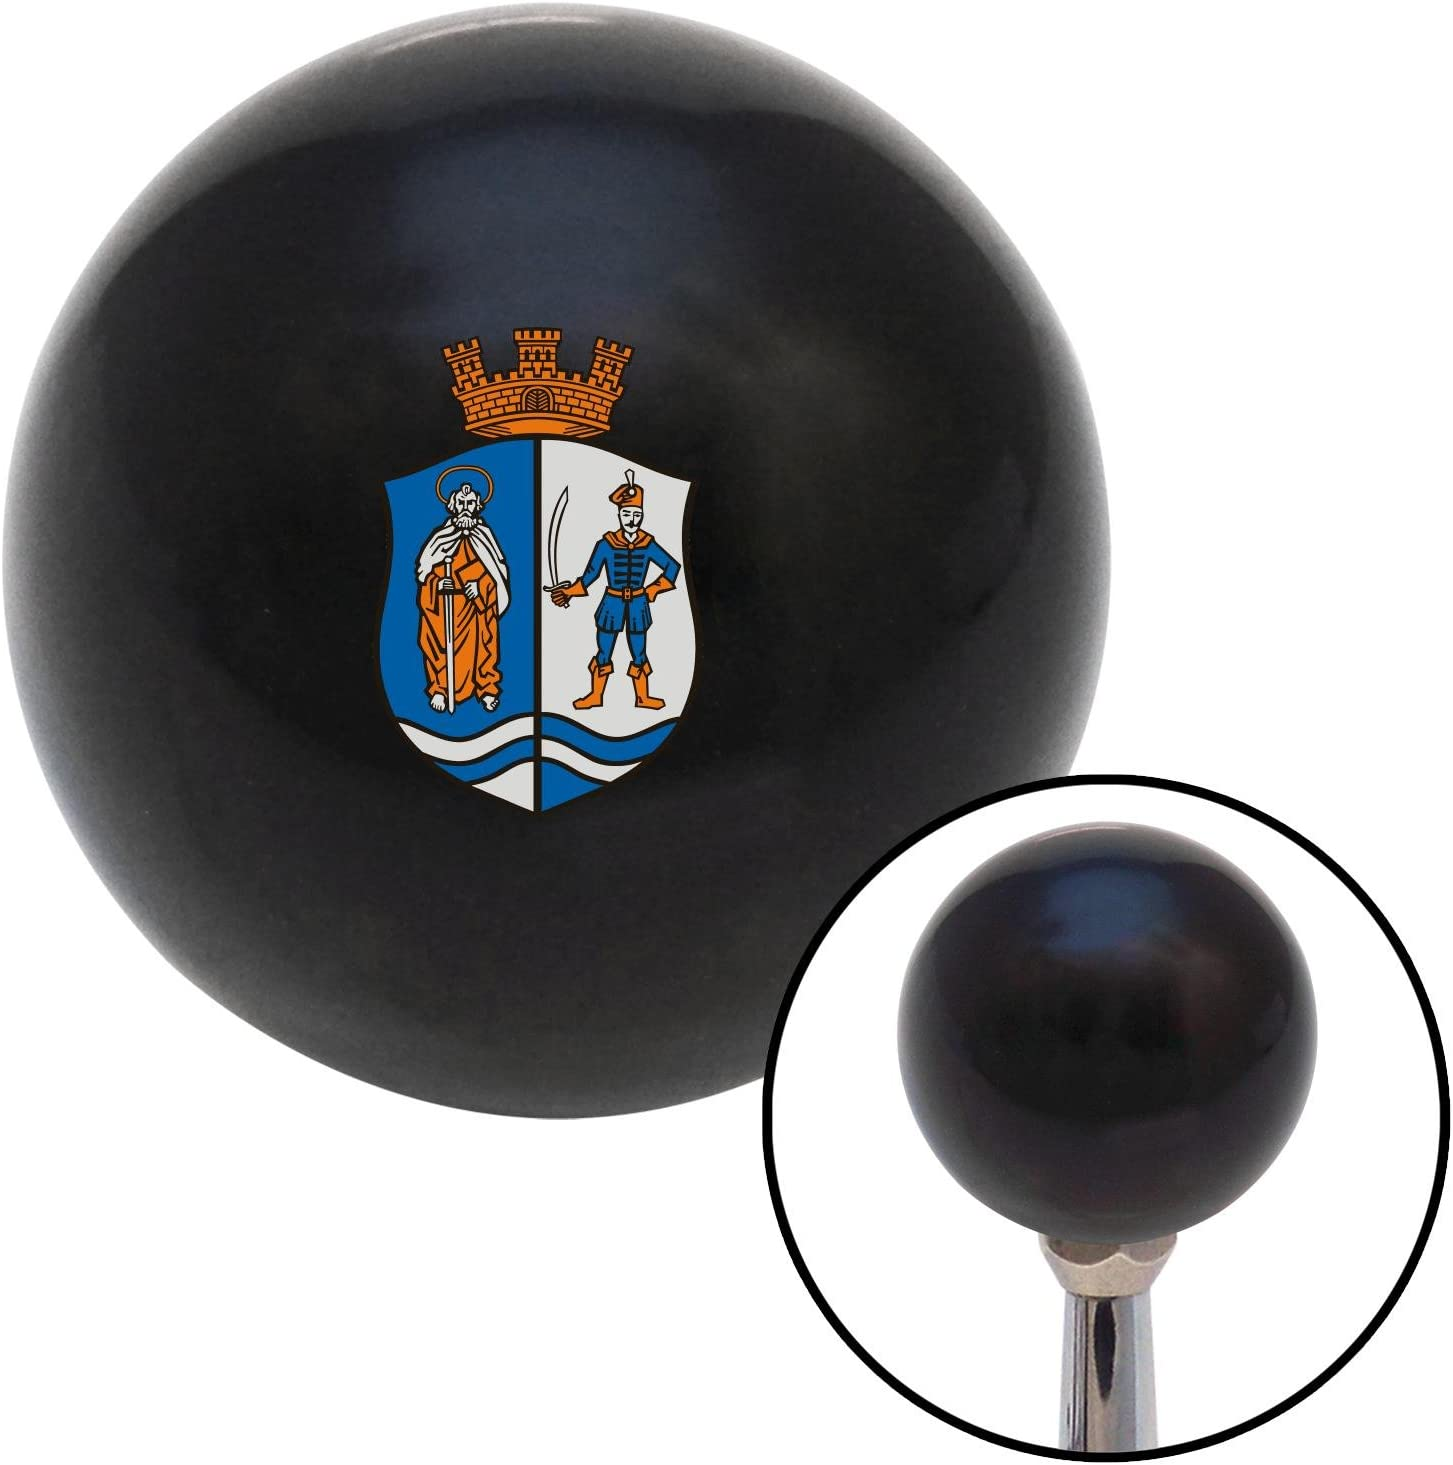 Crown Coat of Arms American Shifter 105388 Black Shift Knob with M16 x 1.5 Insert